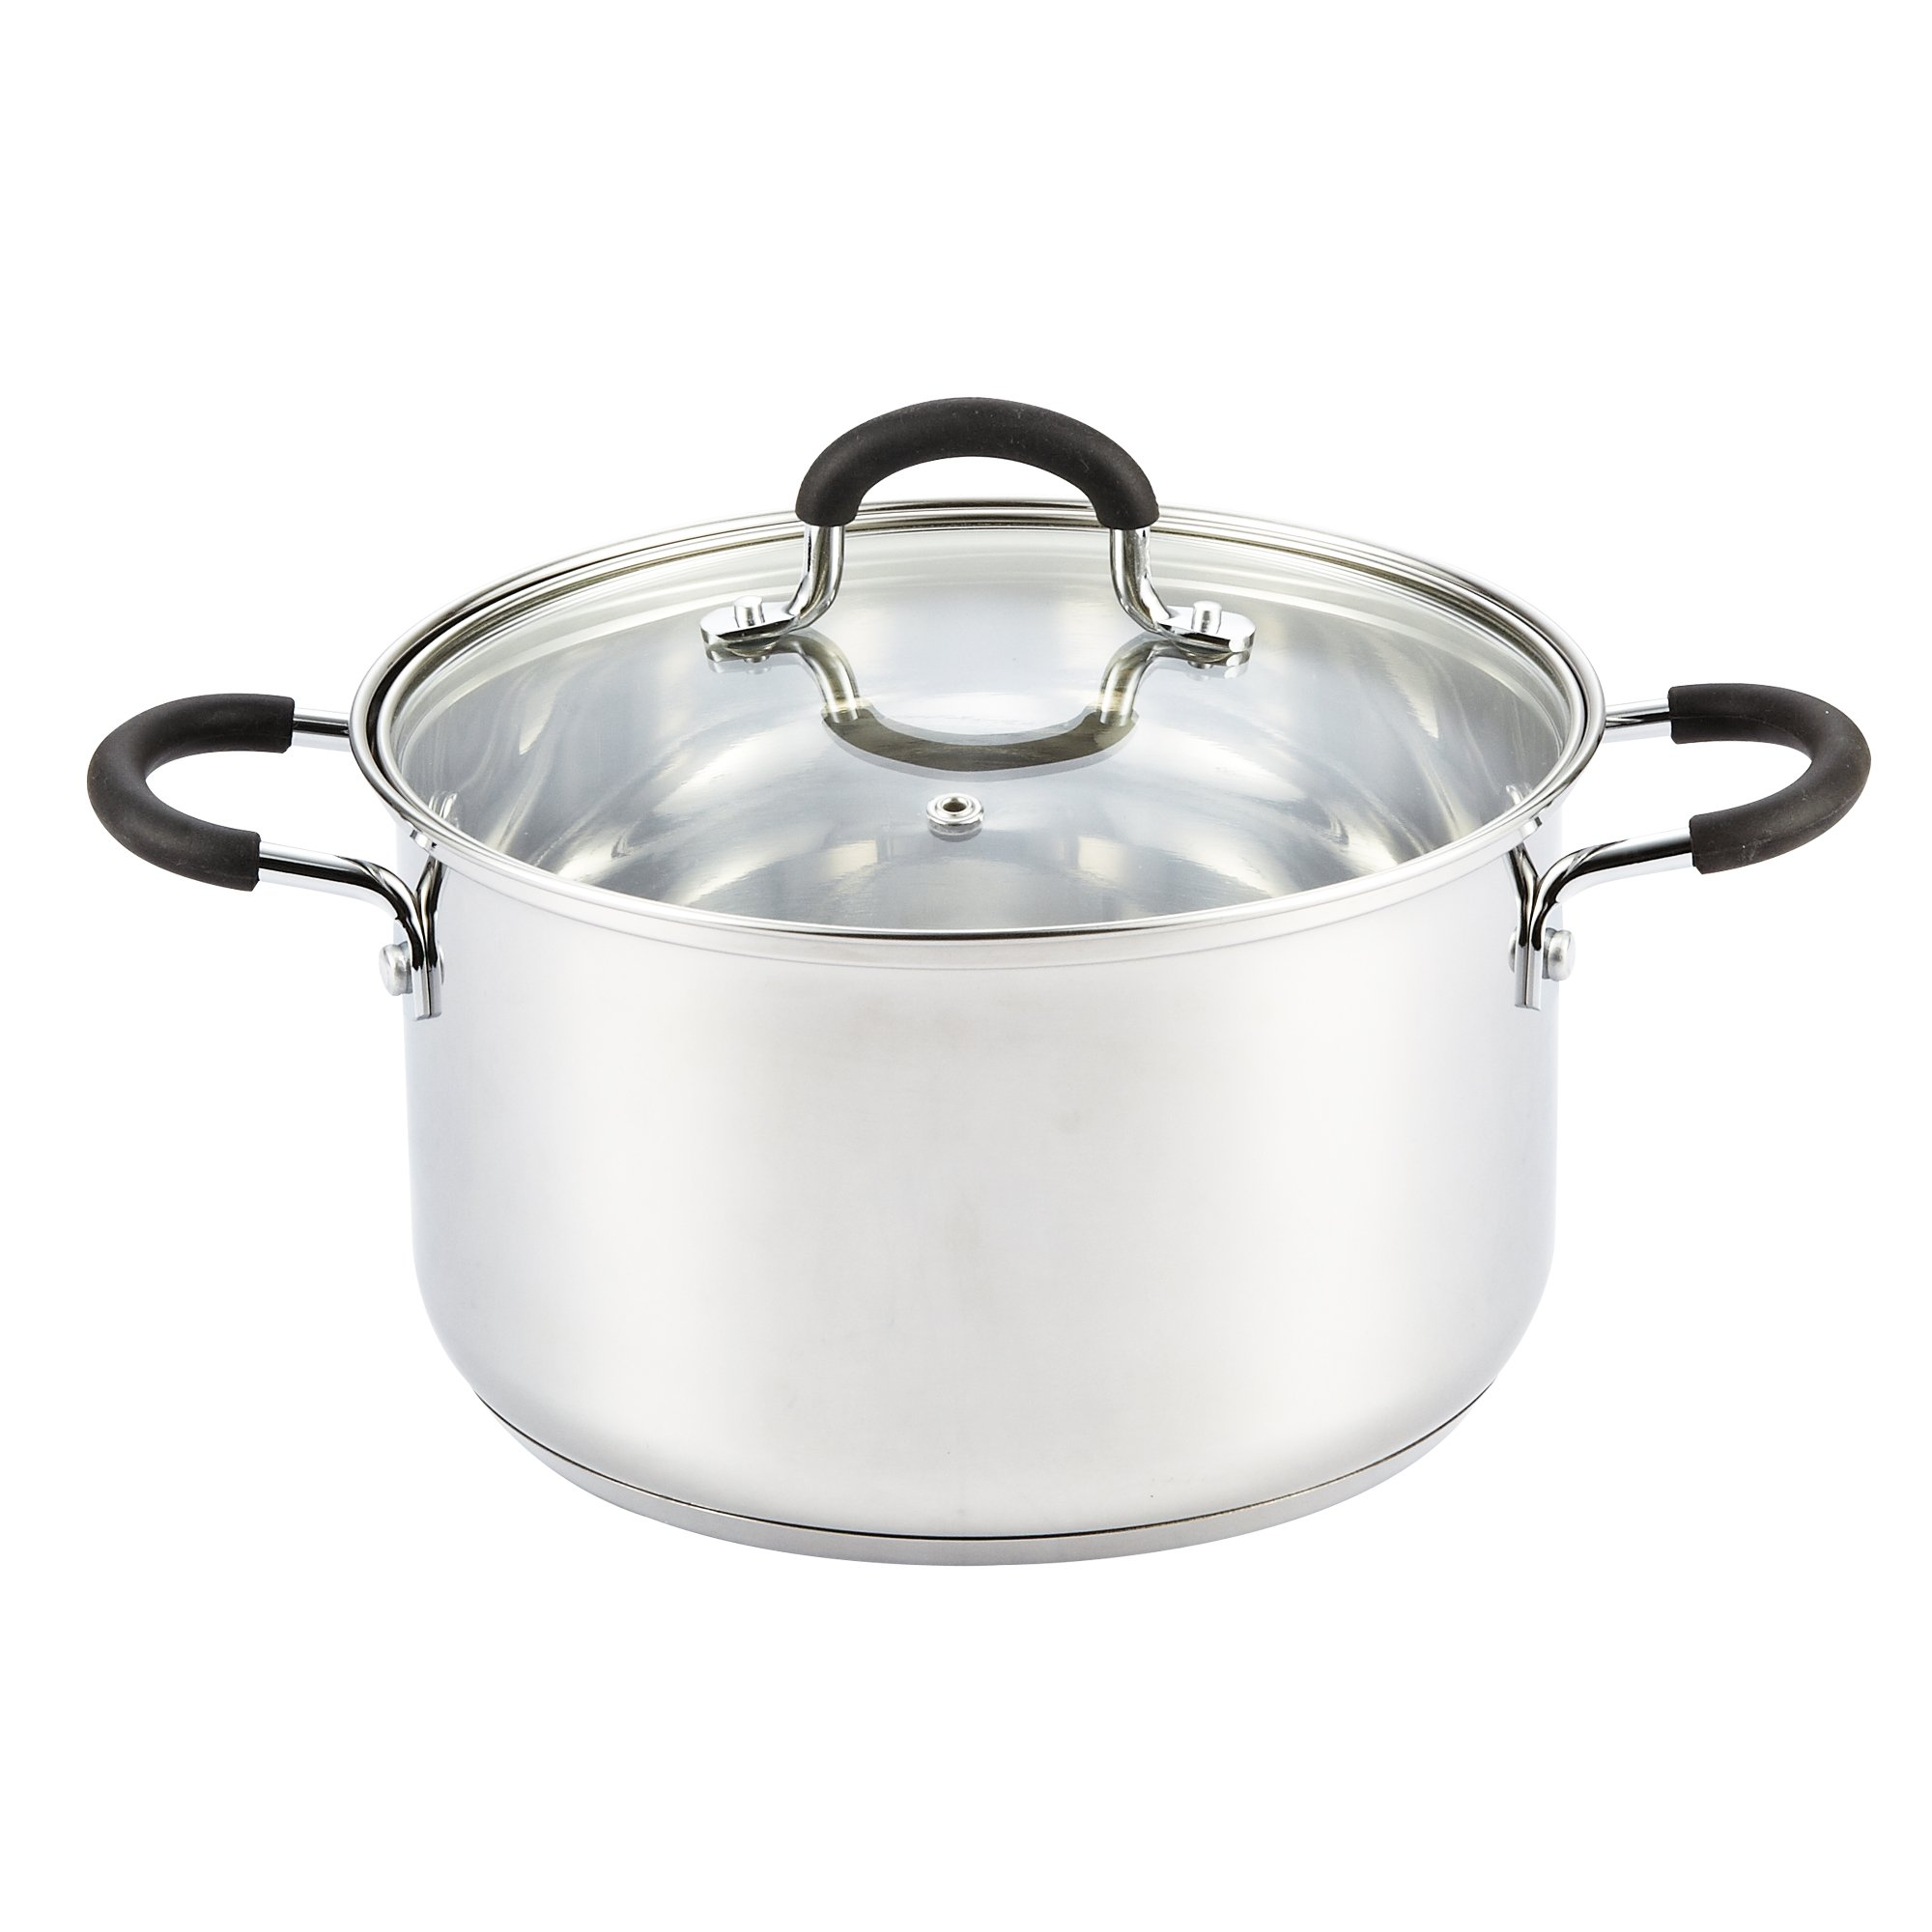 Cook N Home 02418 Stainless Steel Lid 5-Quart Stockpot, 5-Qt, Silver by Cook N Home